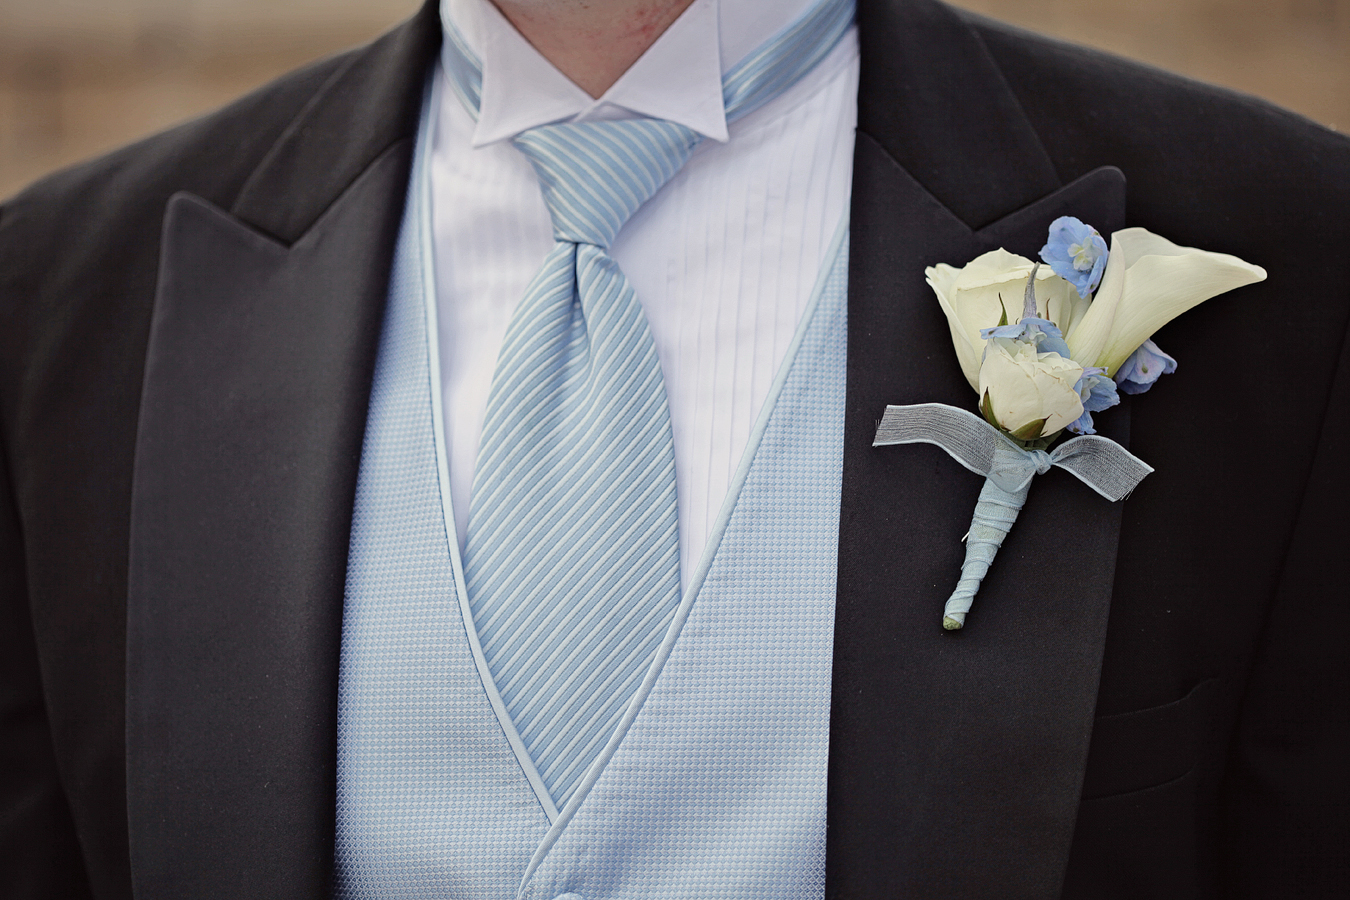 AK, groom, light blue with white vest and boutoner